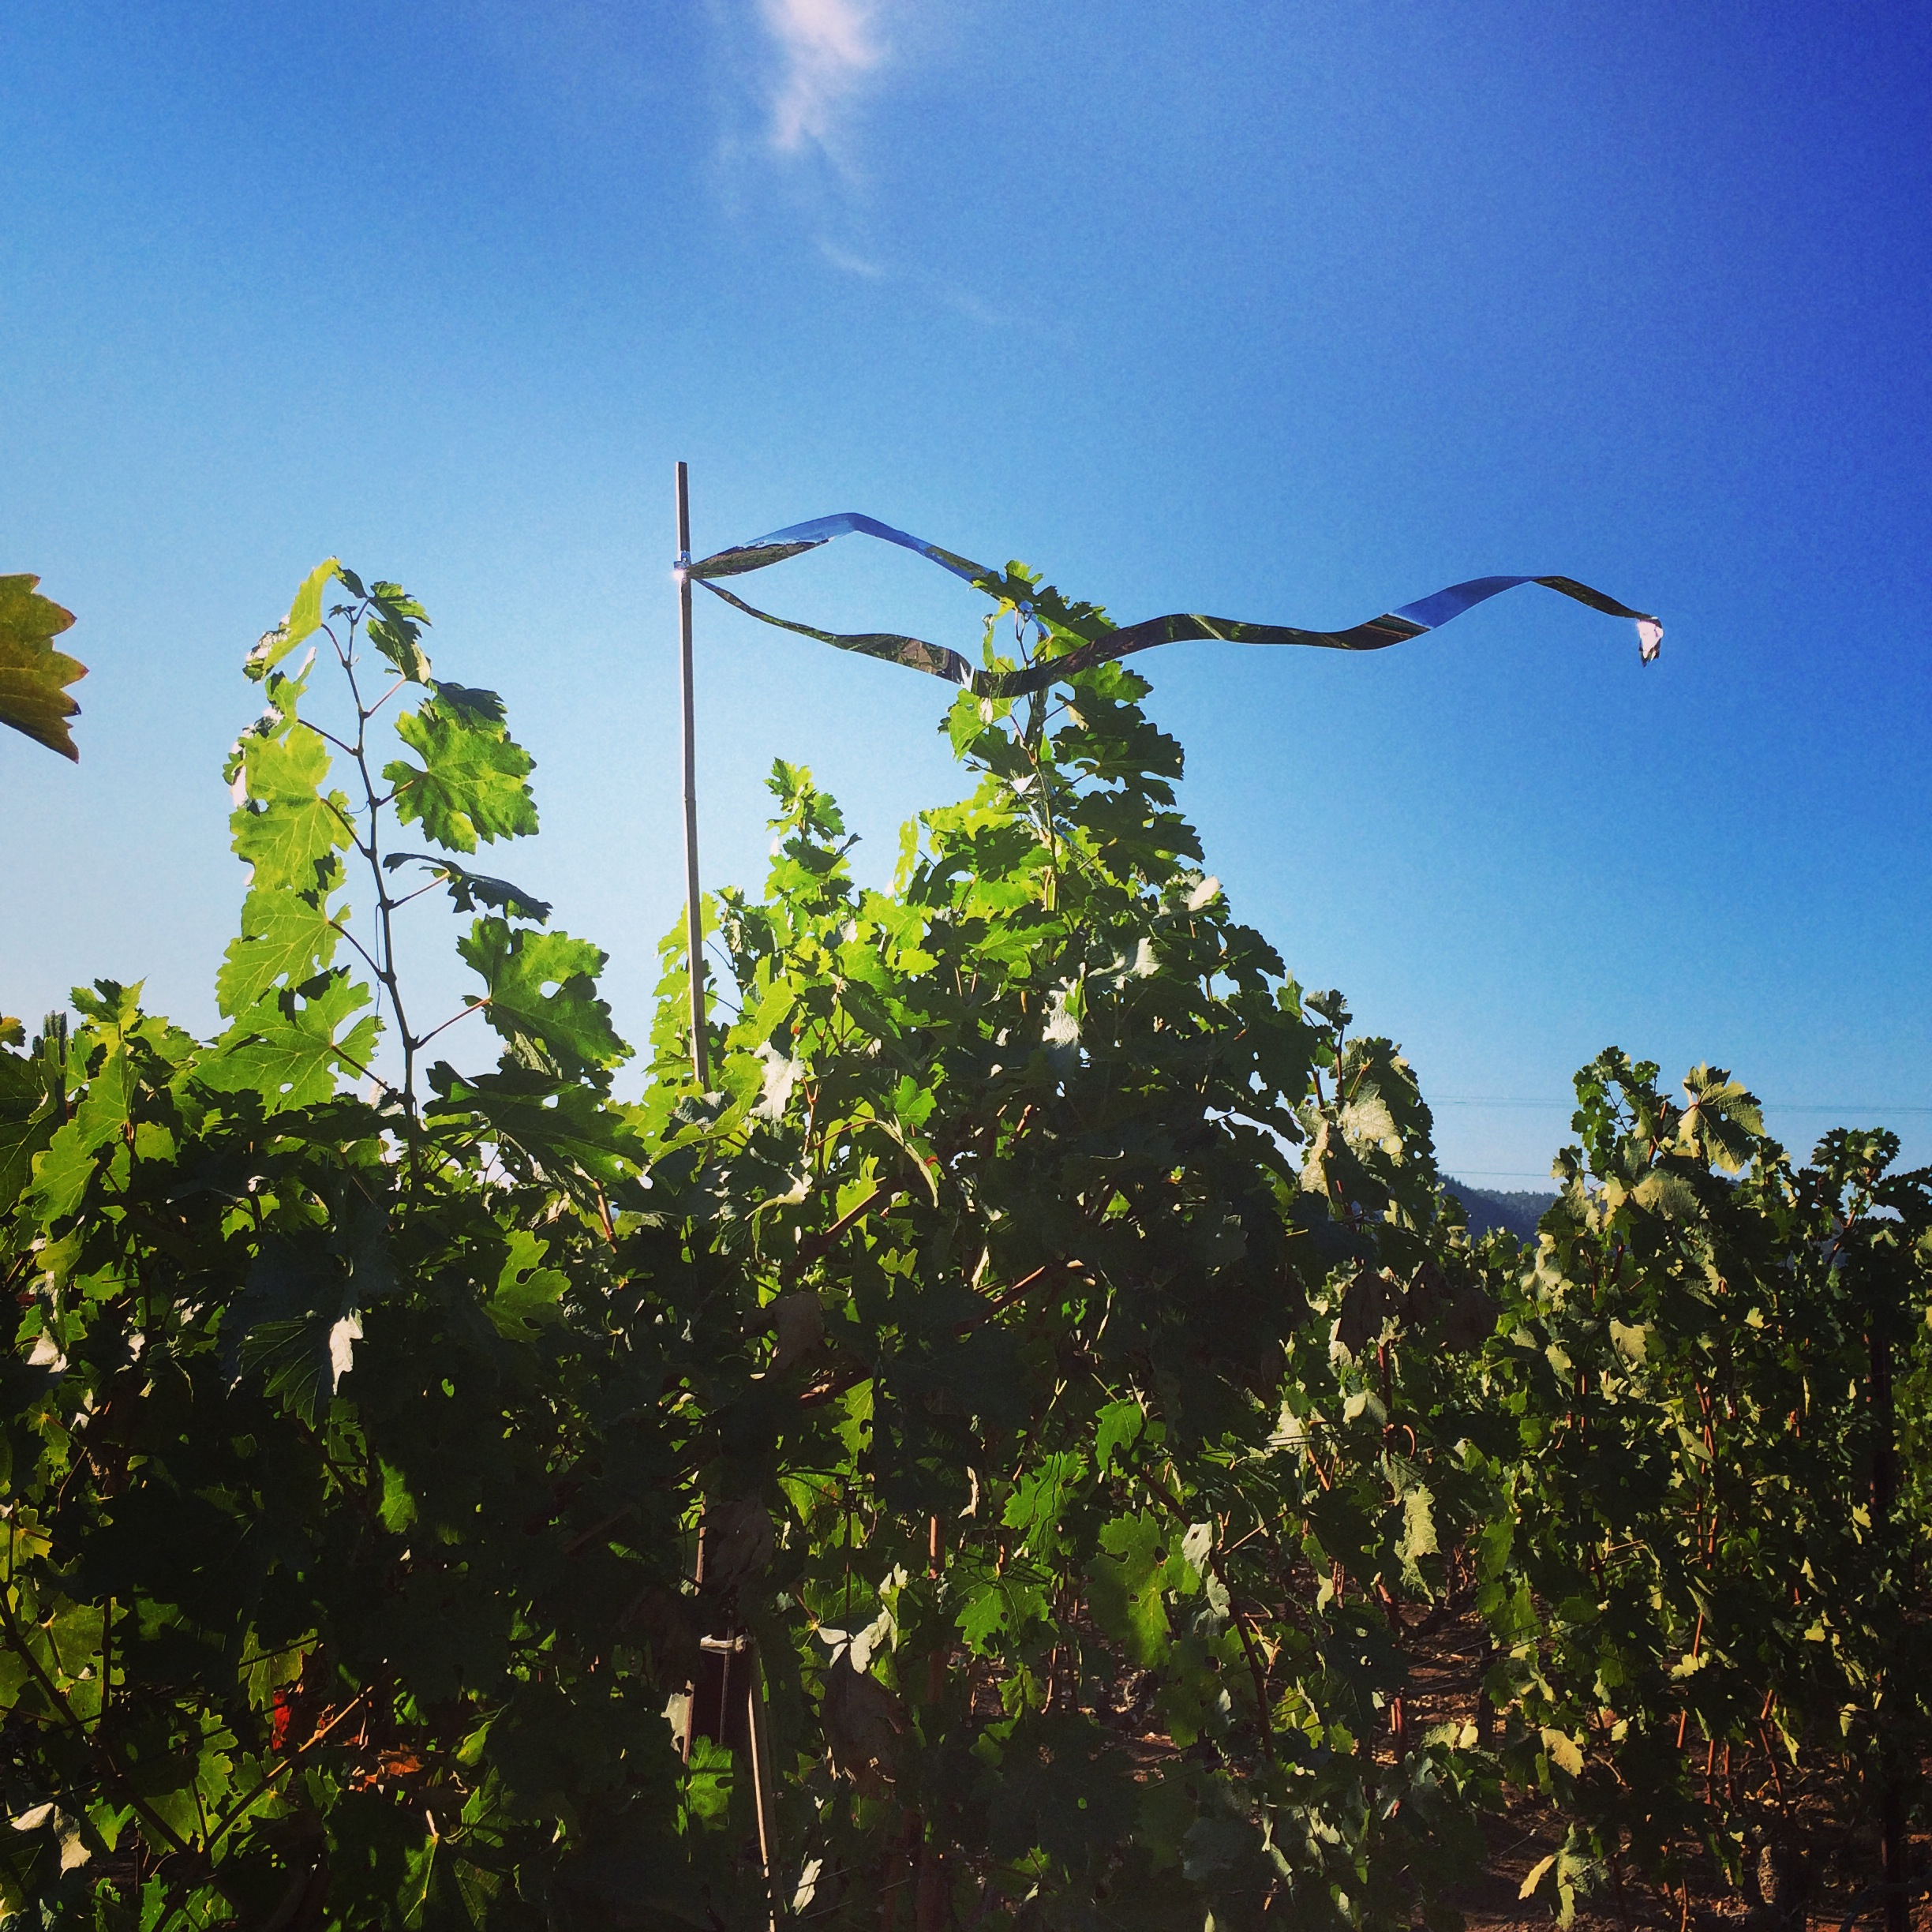 Streamers on the vines help to keep birds from eating the grapes